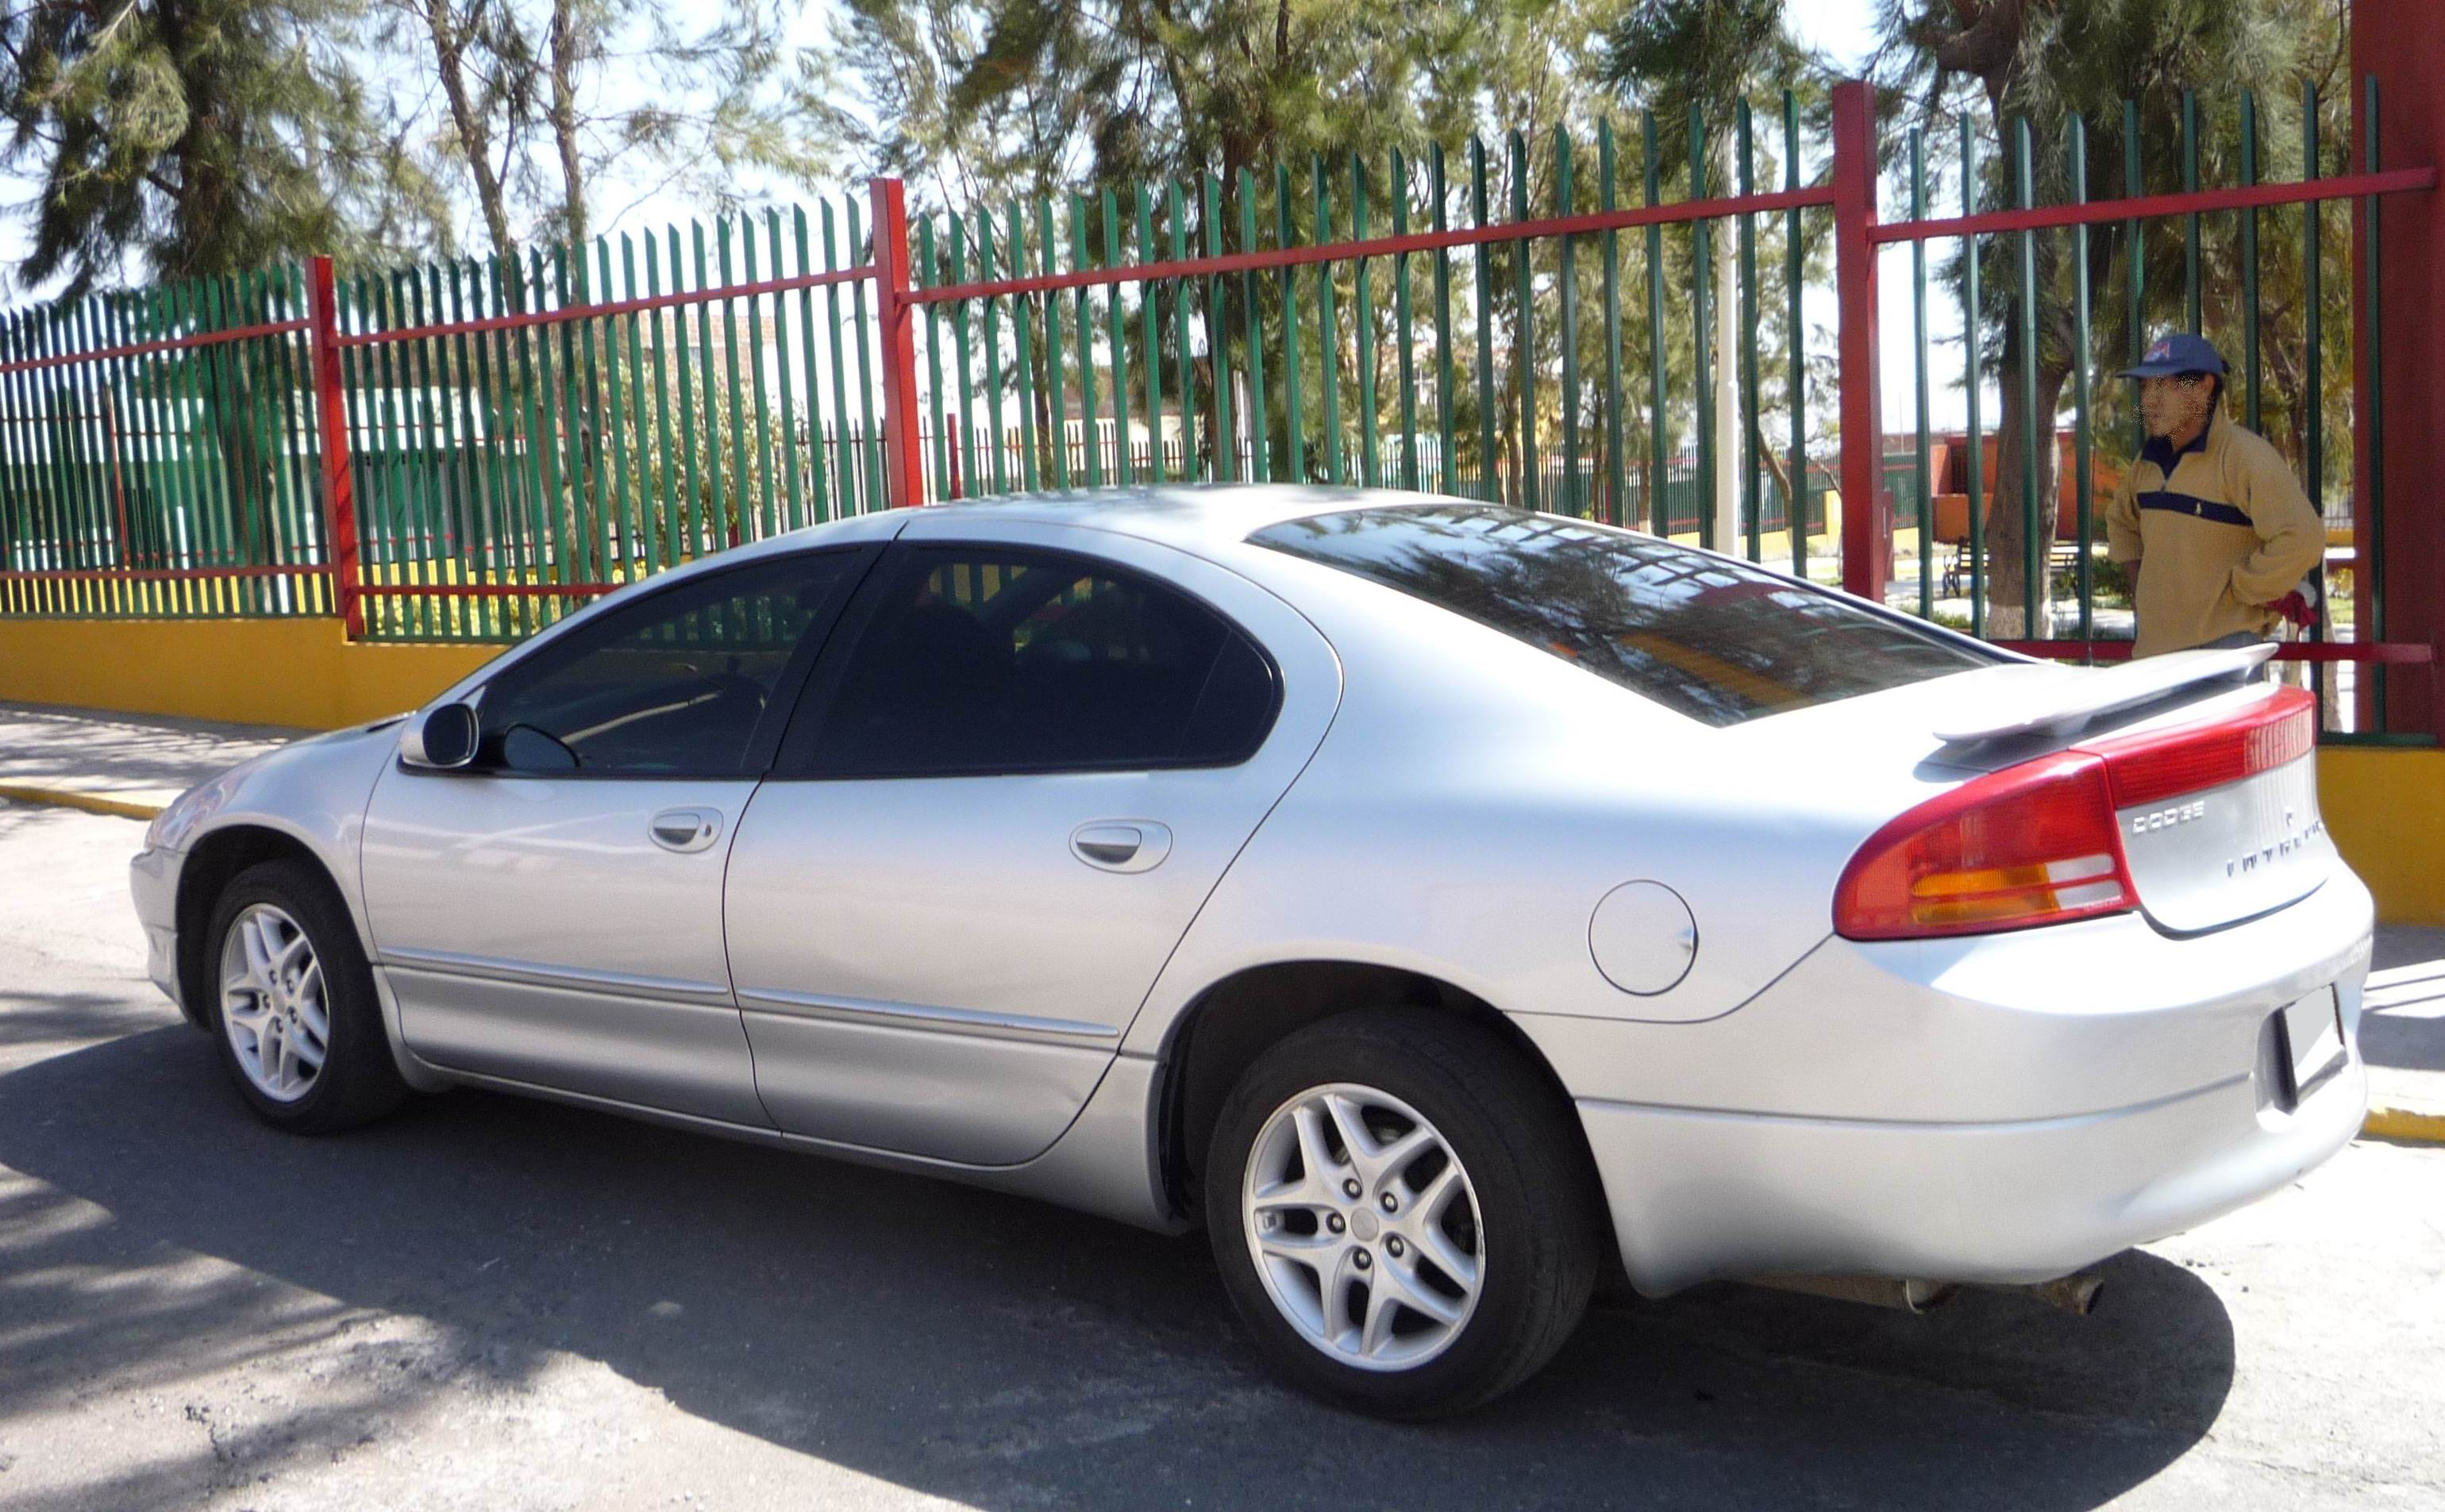 Dodge Intrepid 2002 #1